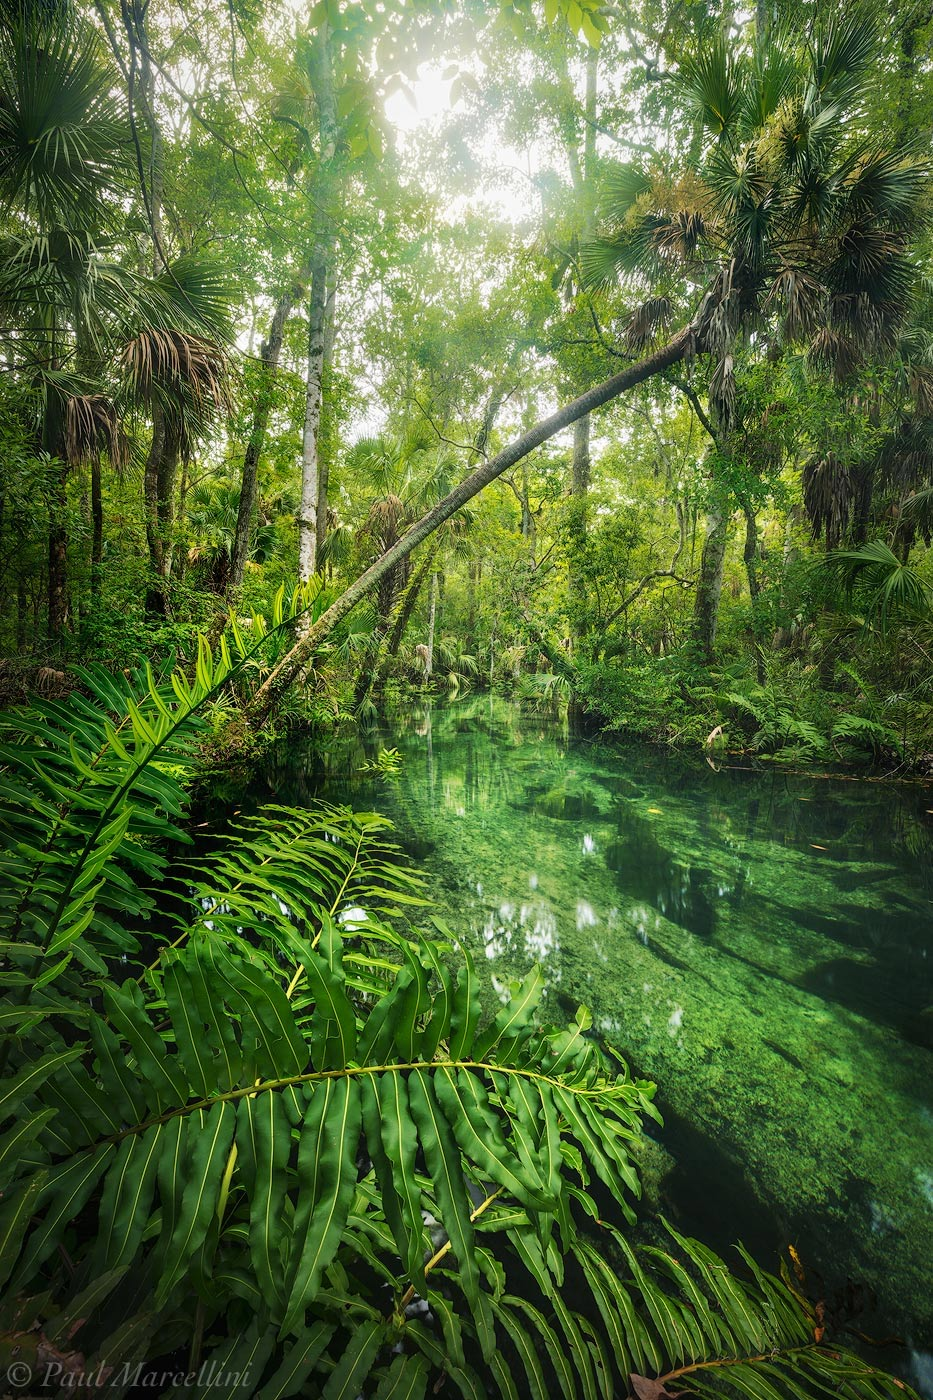 chassahowitzka river, chassahowitzka national wildlife refuge, spring, photo